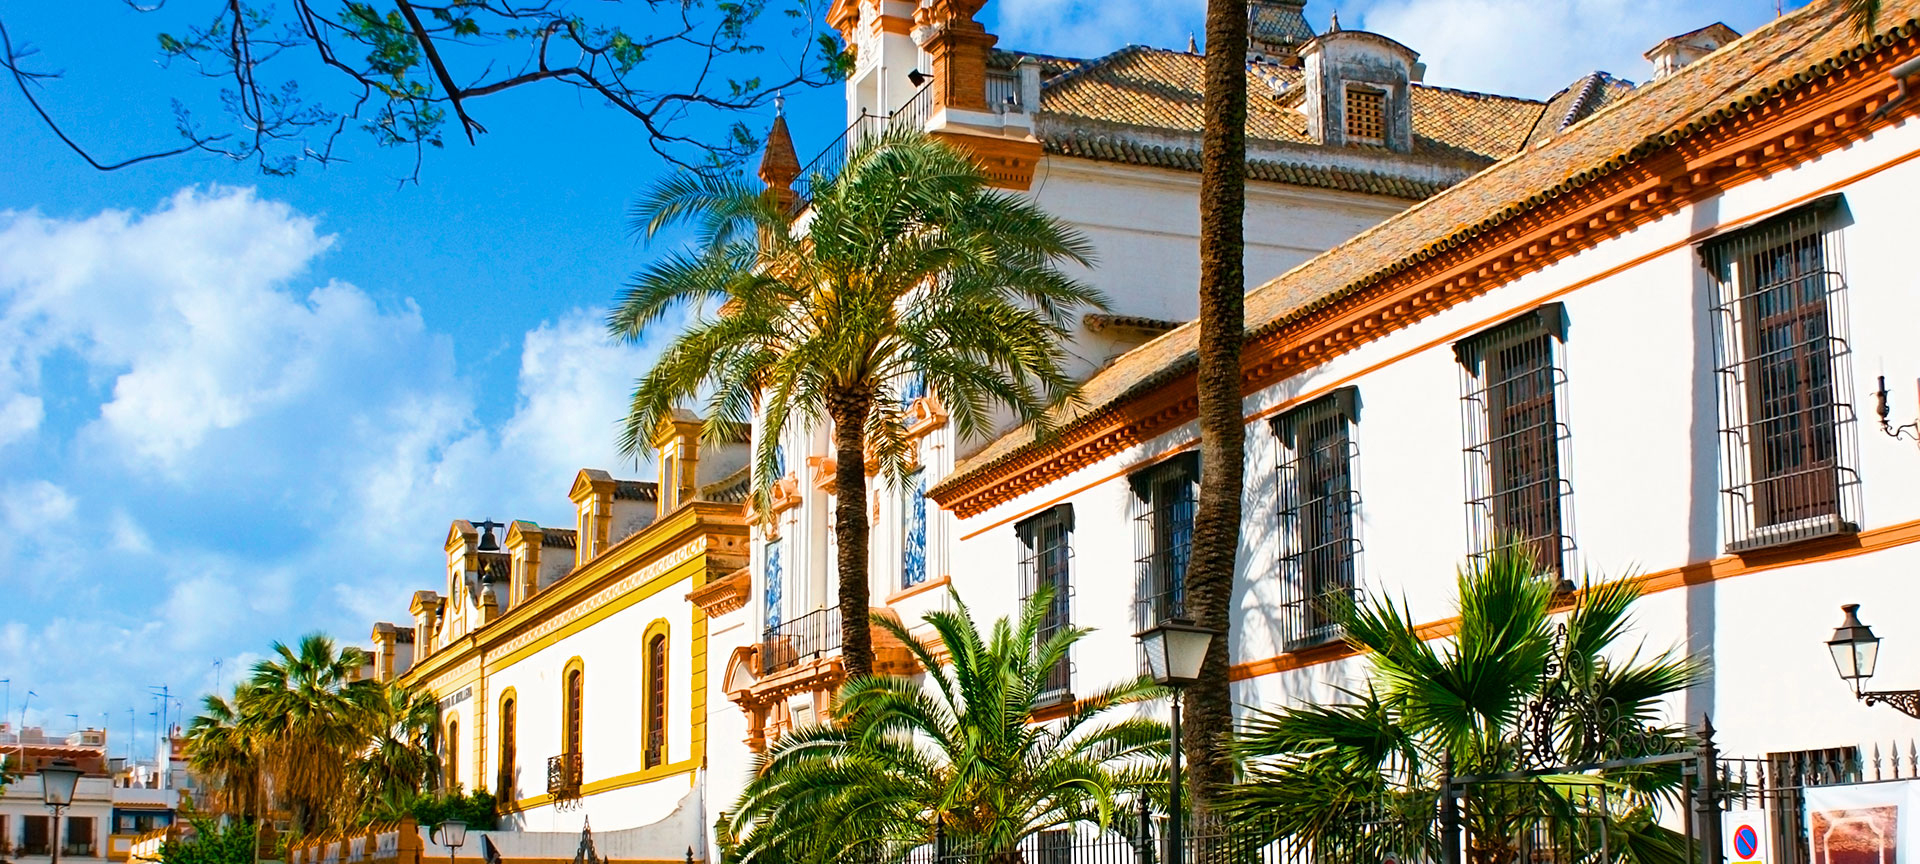 One of Seville's most beautiful buildings is the baroque Hospital de la Caridad, dating from the mid 15th century. Originally founded to help the old and the poor, the hospital still treats patients and the hospital's chapel is 'must see' for any visitor to the city.